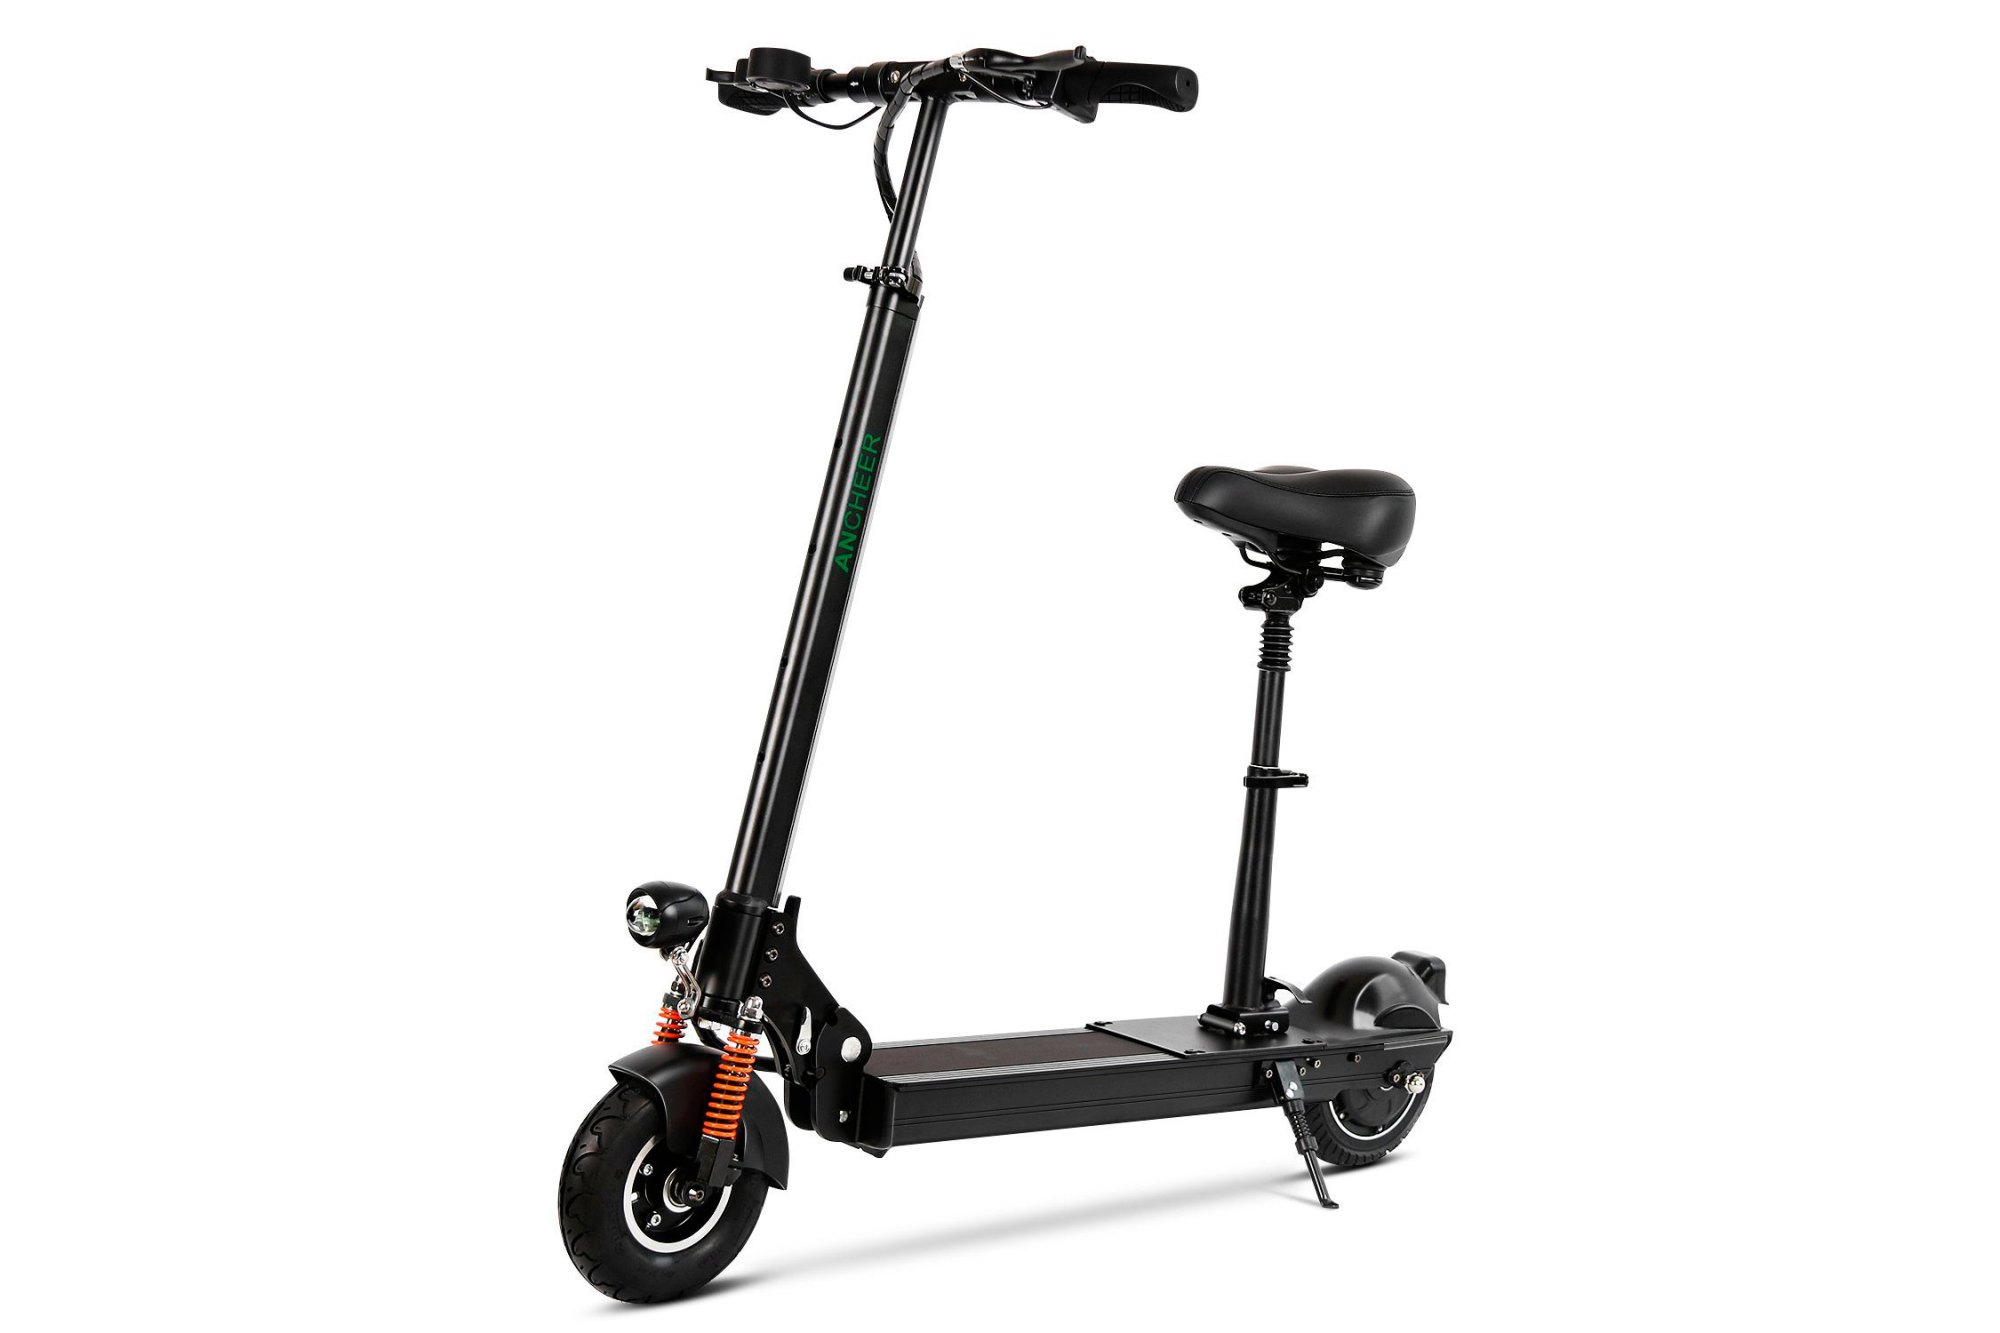 hight resolution of gy6 50cc wiring diagram electric scooters for sale wiring diagramelectric scooter wiring schematic scooters for sale